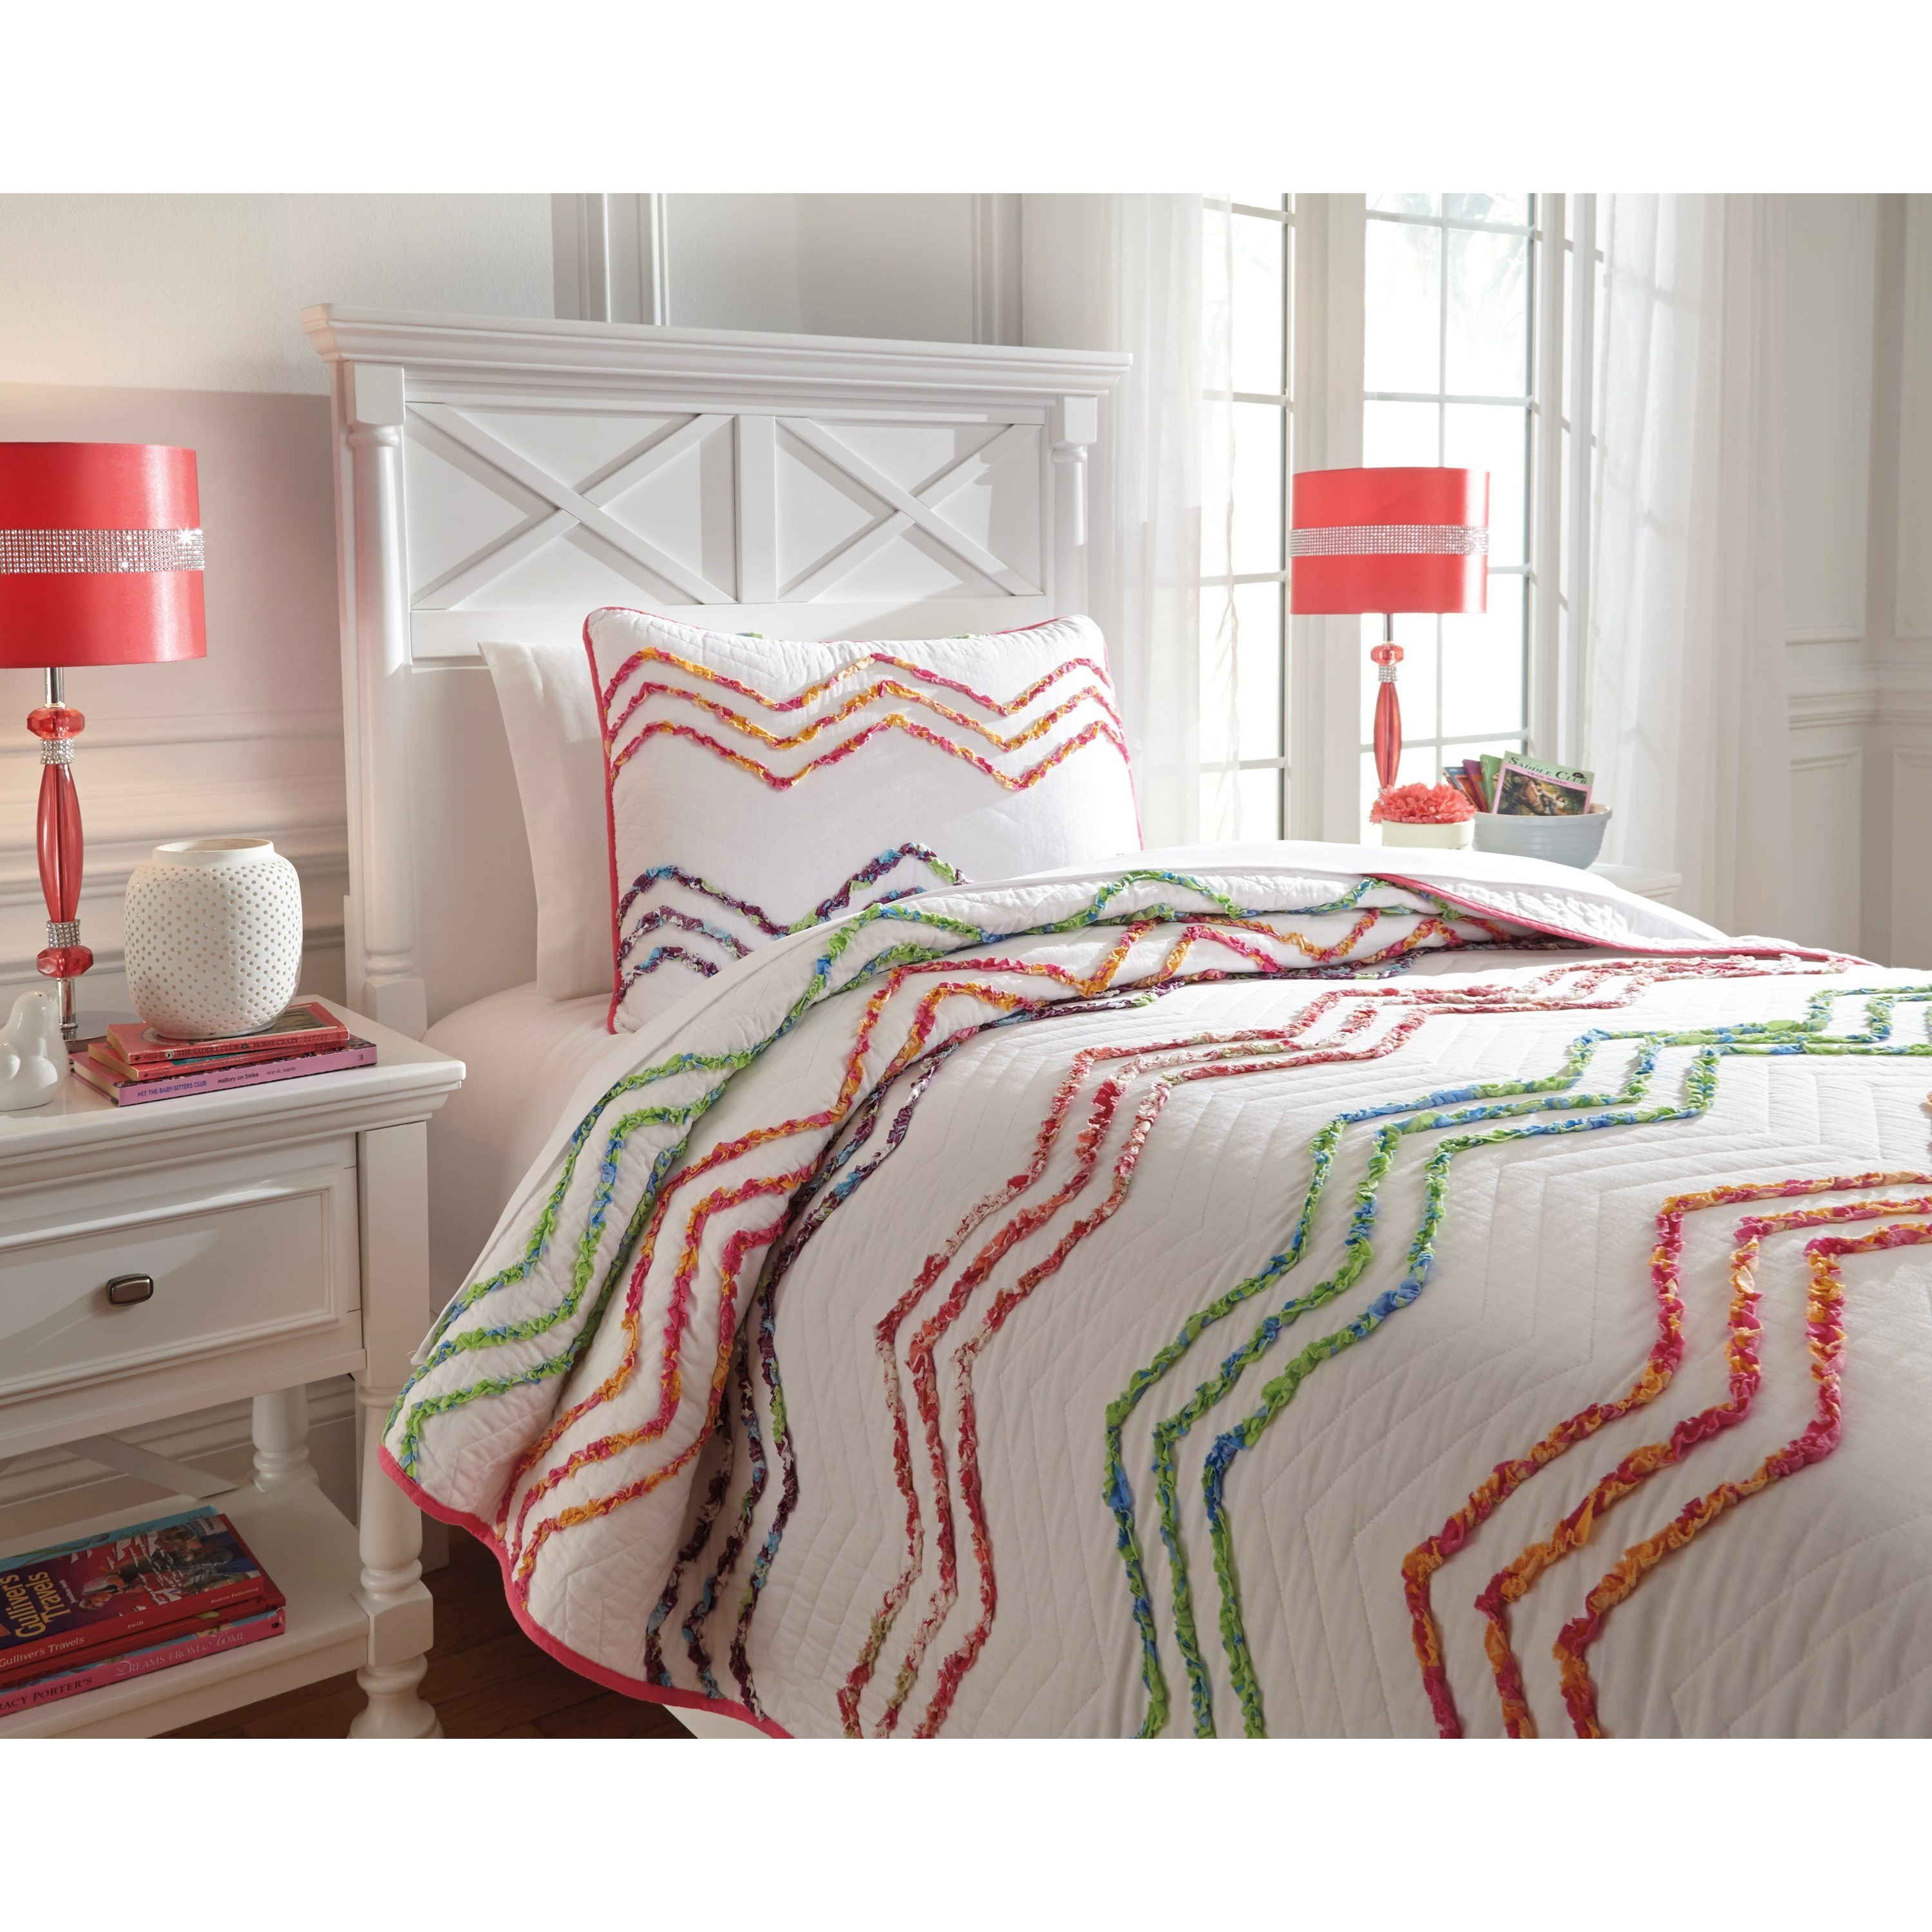 Signature Design by Ashley Bedding Sets Twin Lacentera Quilt Set Beck s